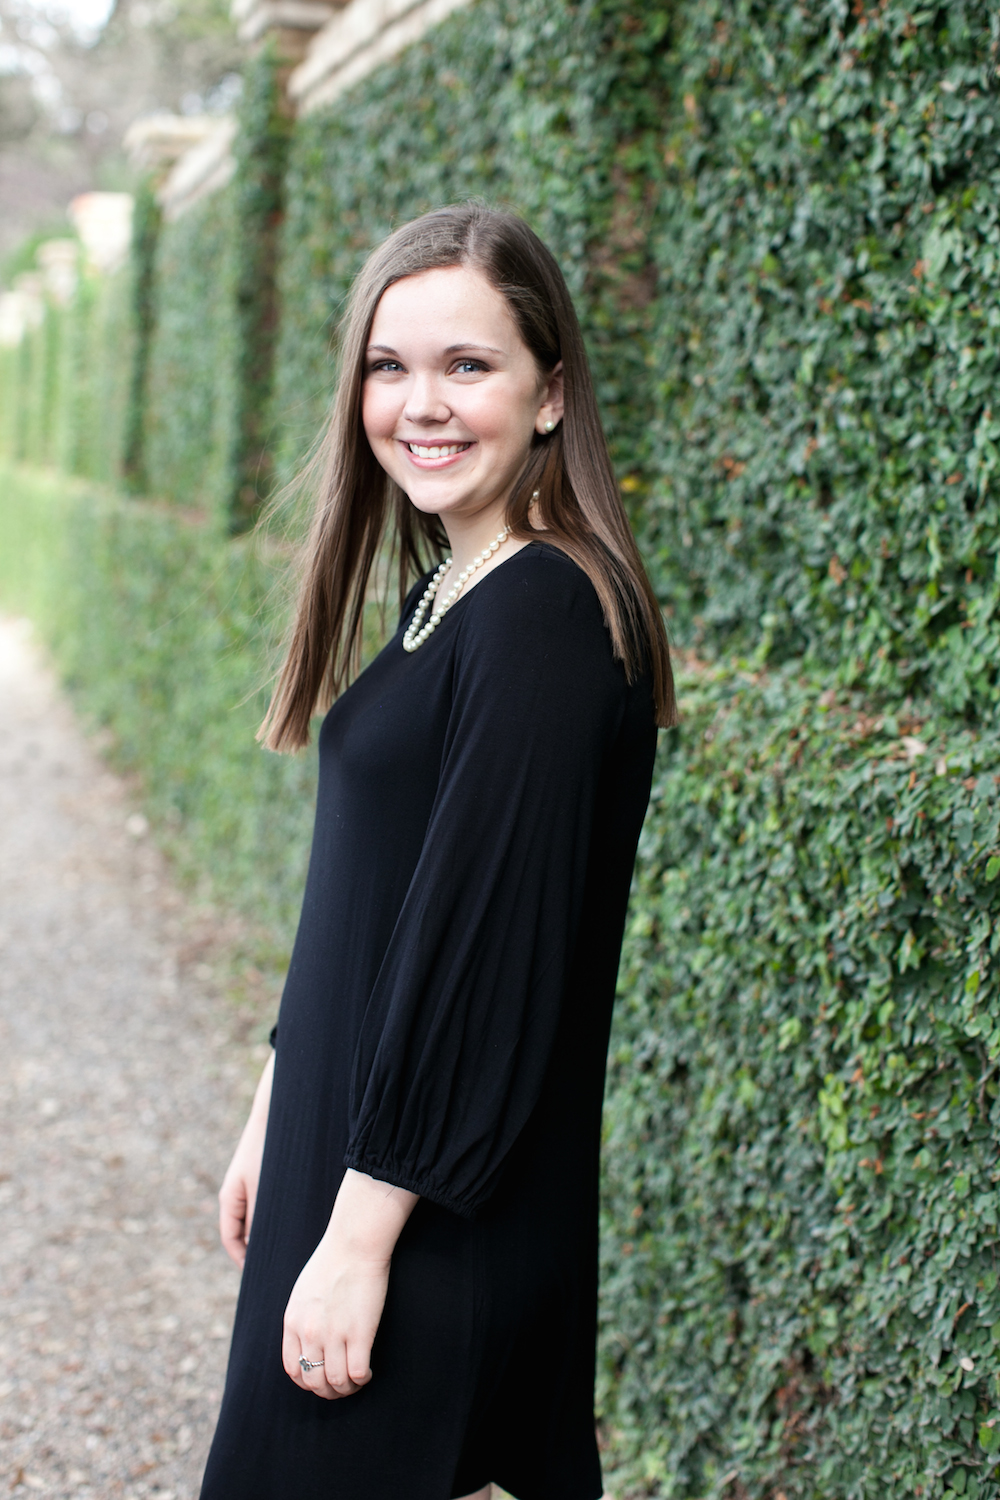 Senior Portraits | Austin, TX | Kate Stafford Photography